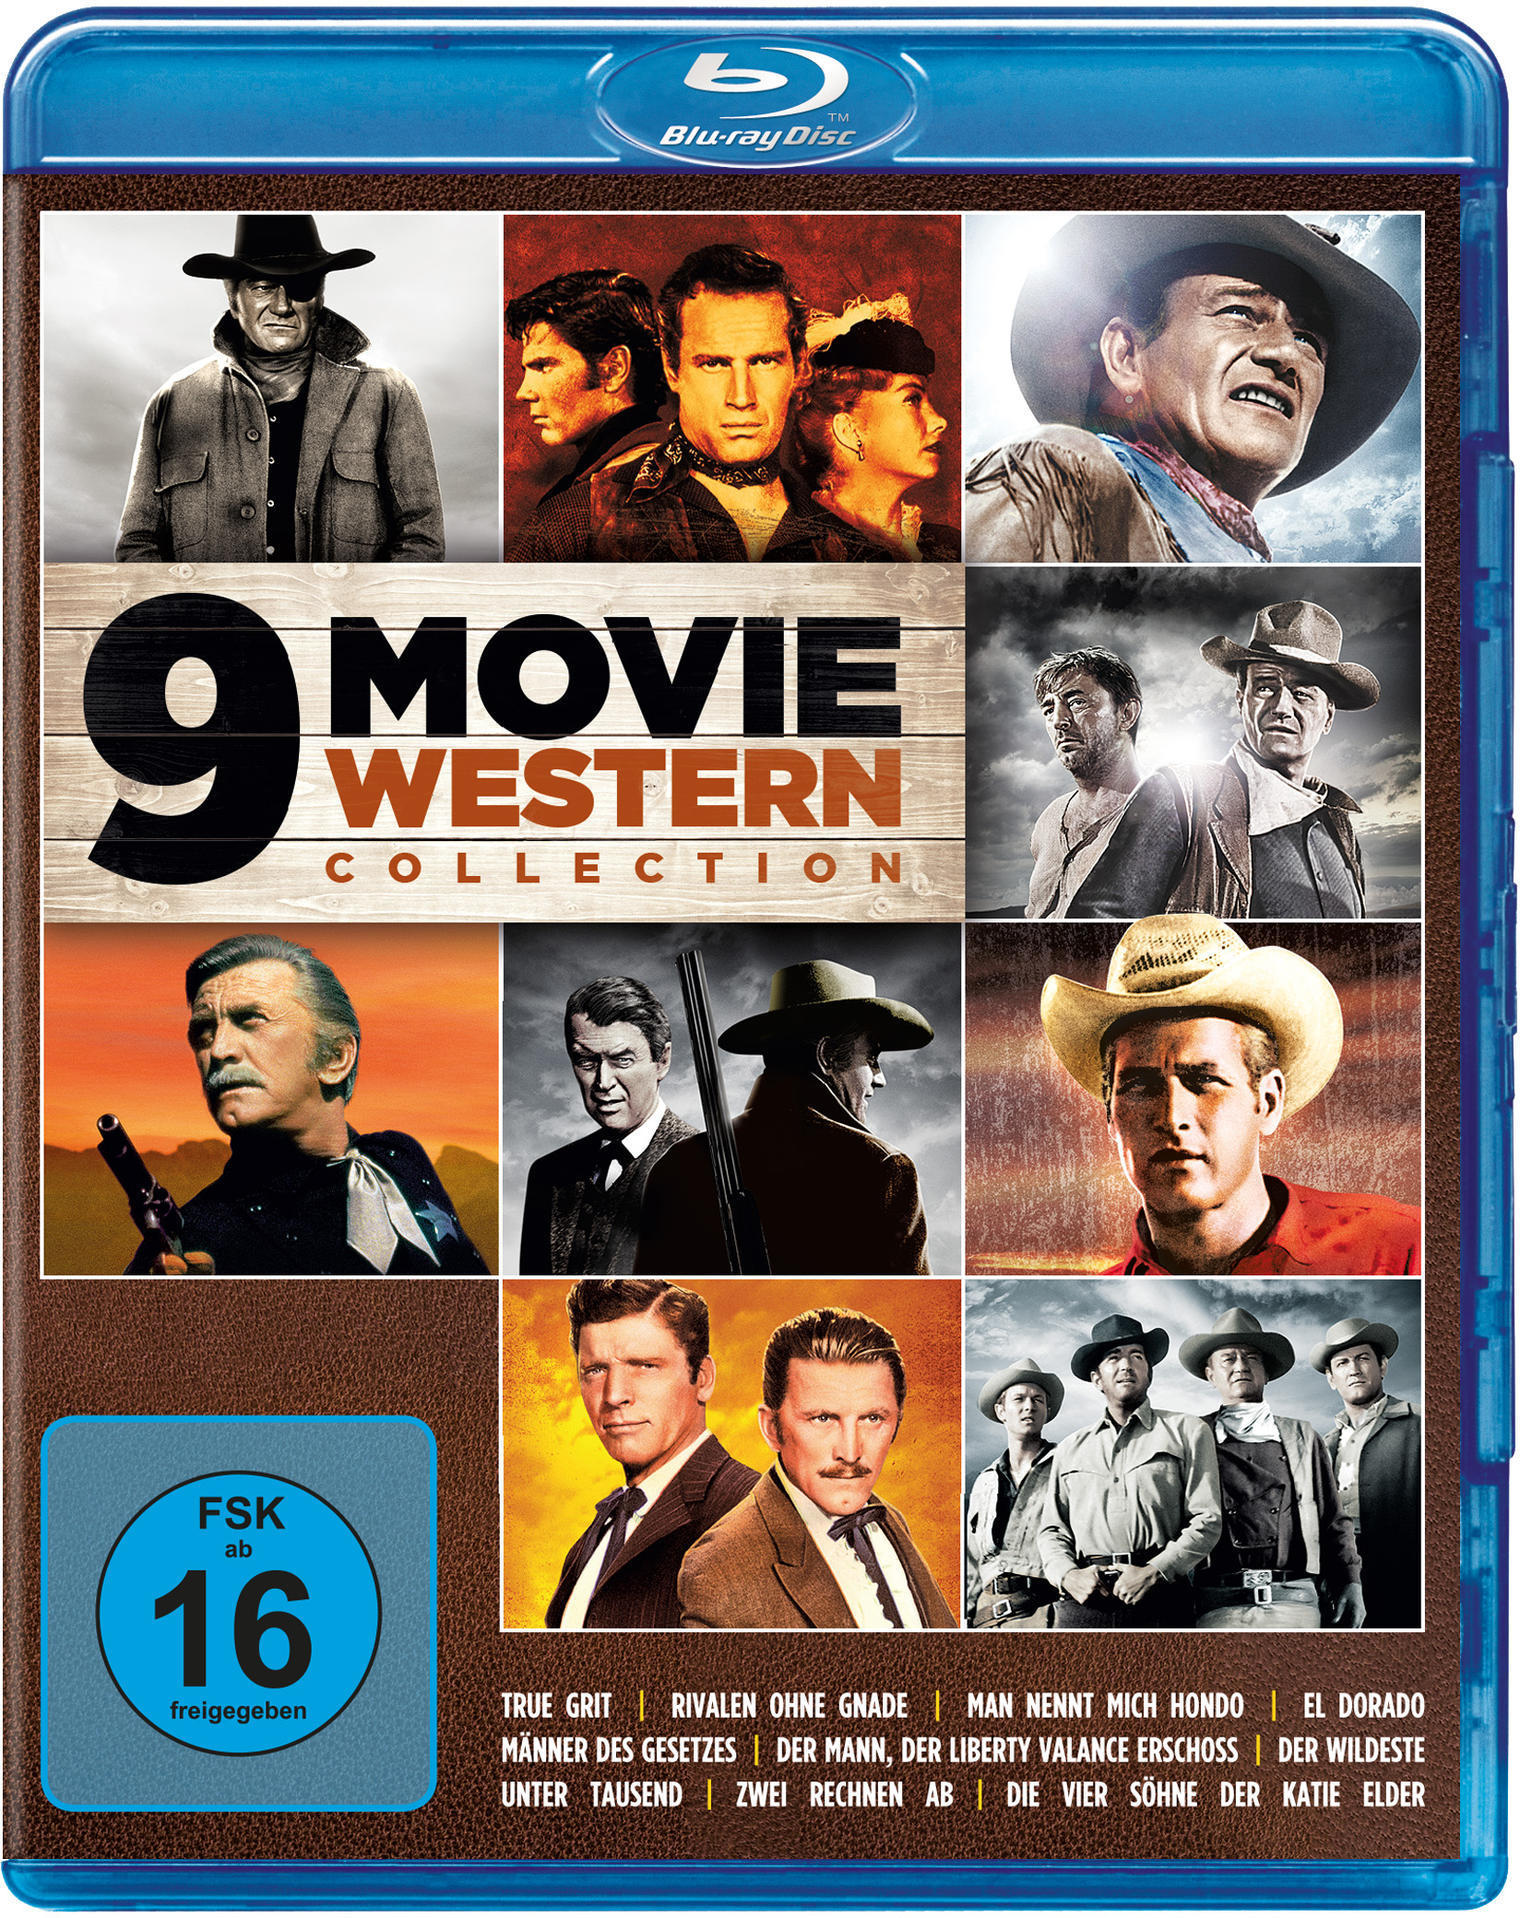 9 Movie Western Collection - Vol. 1 BLU-RAY Box (BLU-RAY) für 19,99 Euro